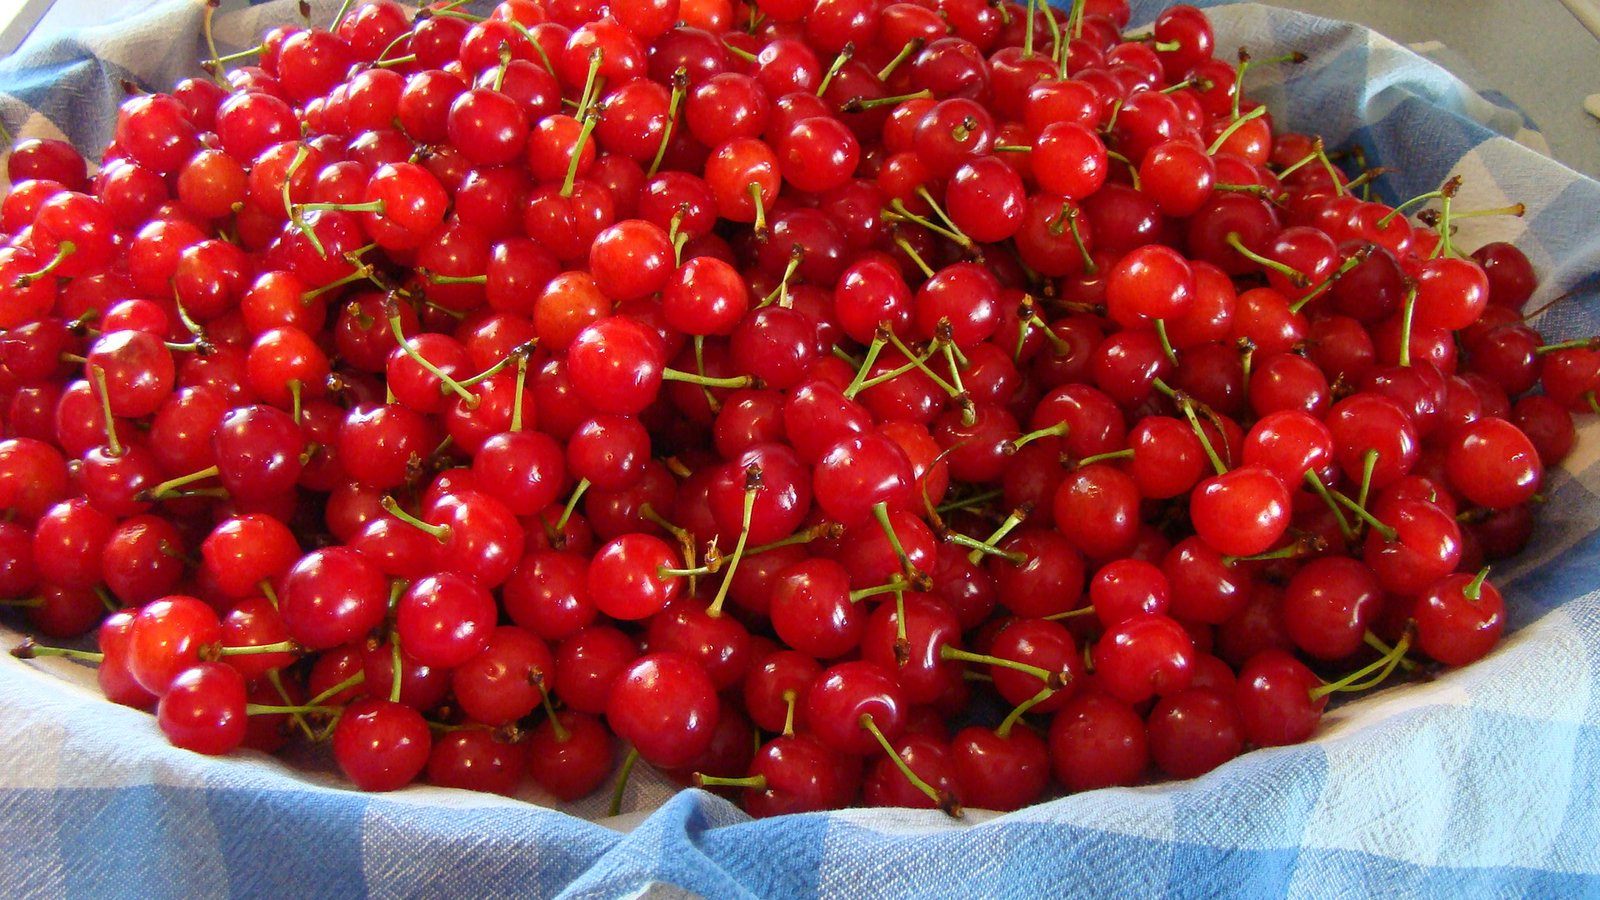 The Tart Cherry Juice Benefits